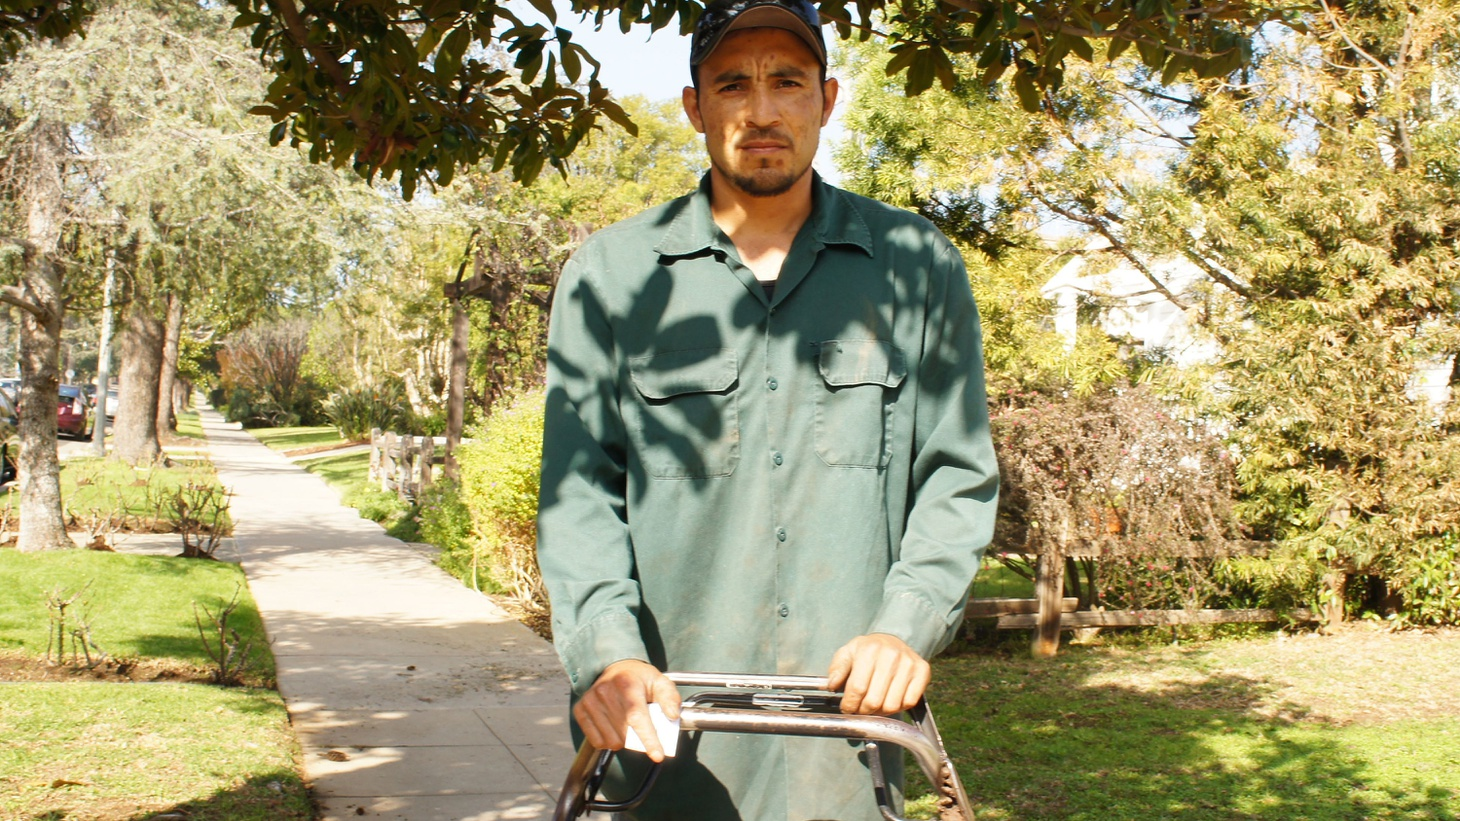 Drought or no drought, suburban lawns and year-round residential gardens are part of the good life in Southern California. To tend them, homeowners have long relied on a workforce of newcomers. 